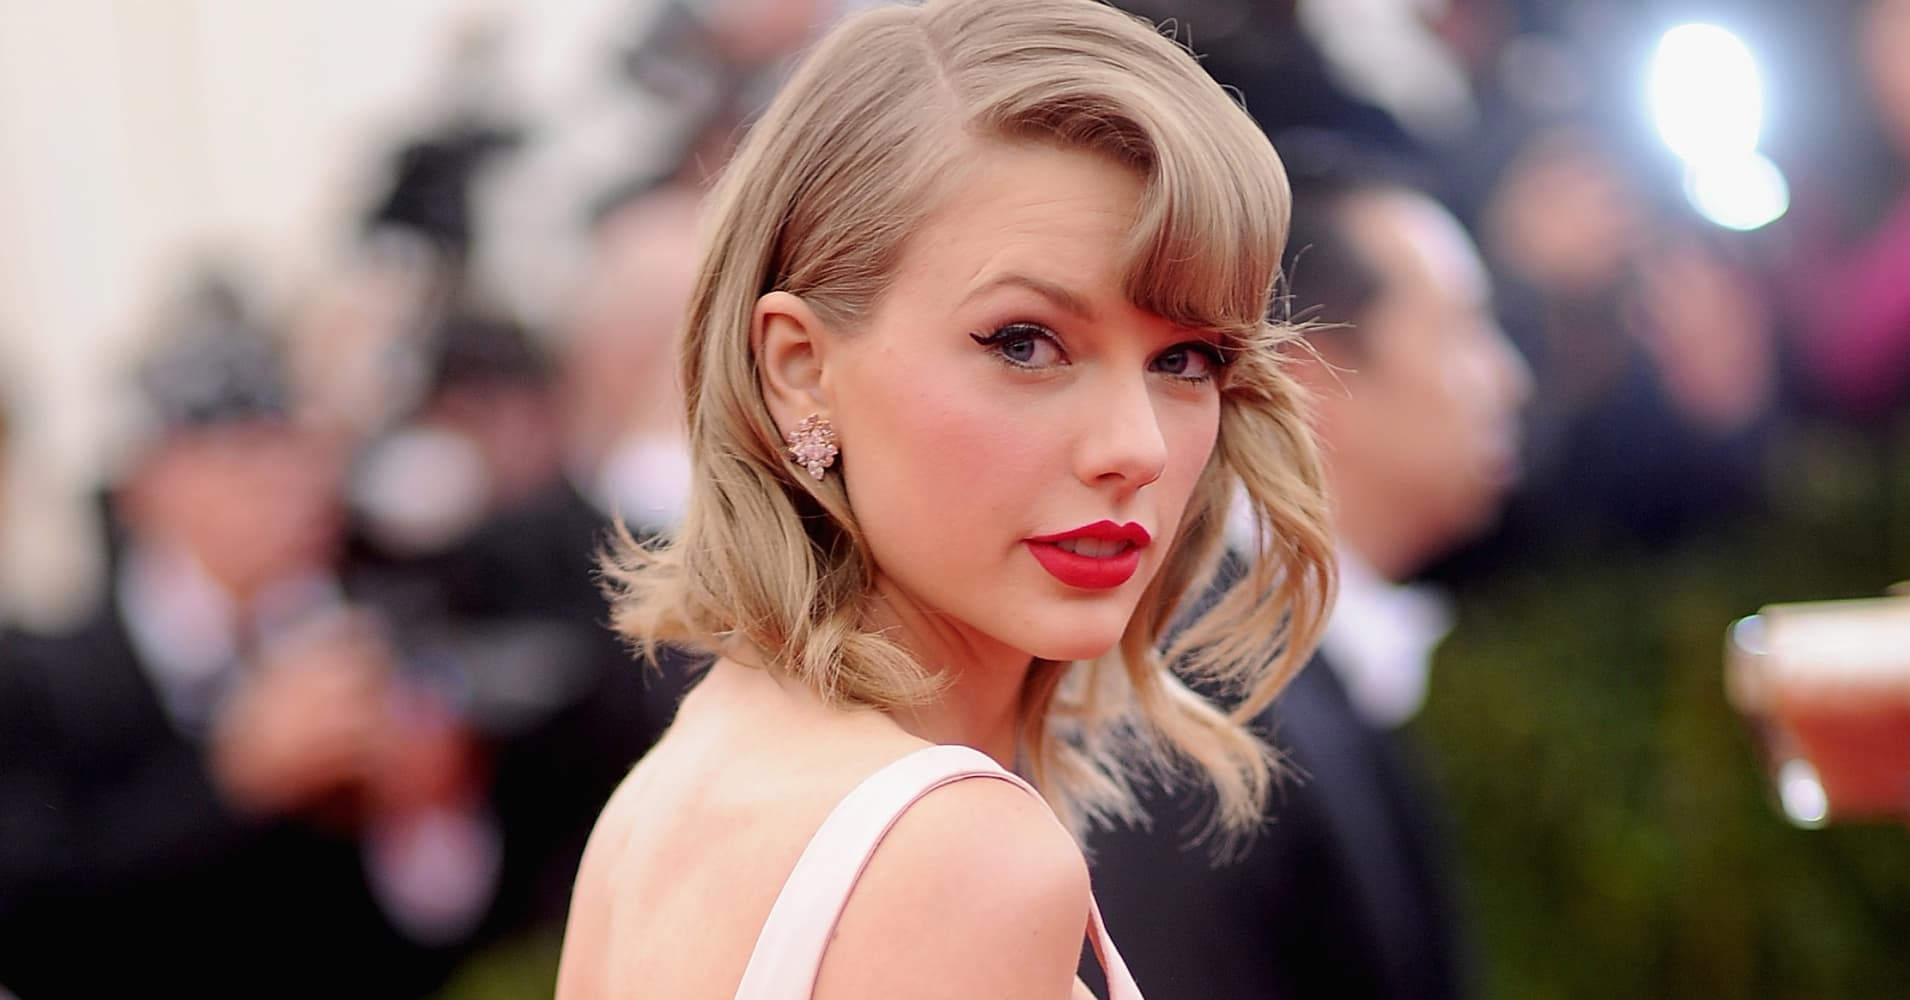 The singer-songwriter tops Forbes' annual list of the 100 highest-paid celebrities with $170 million.